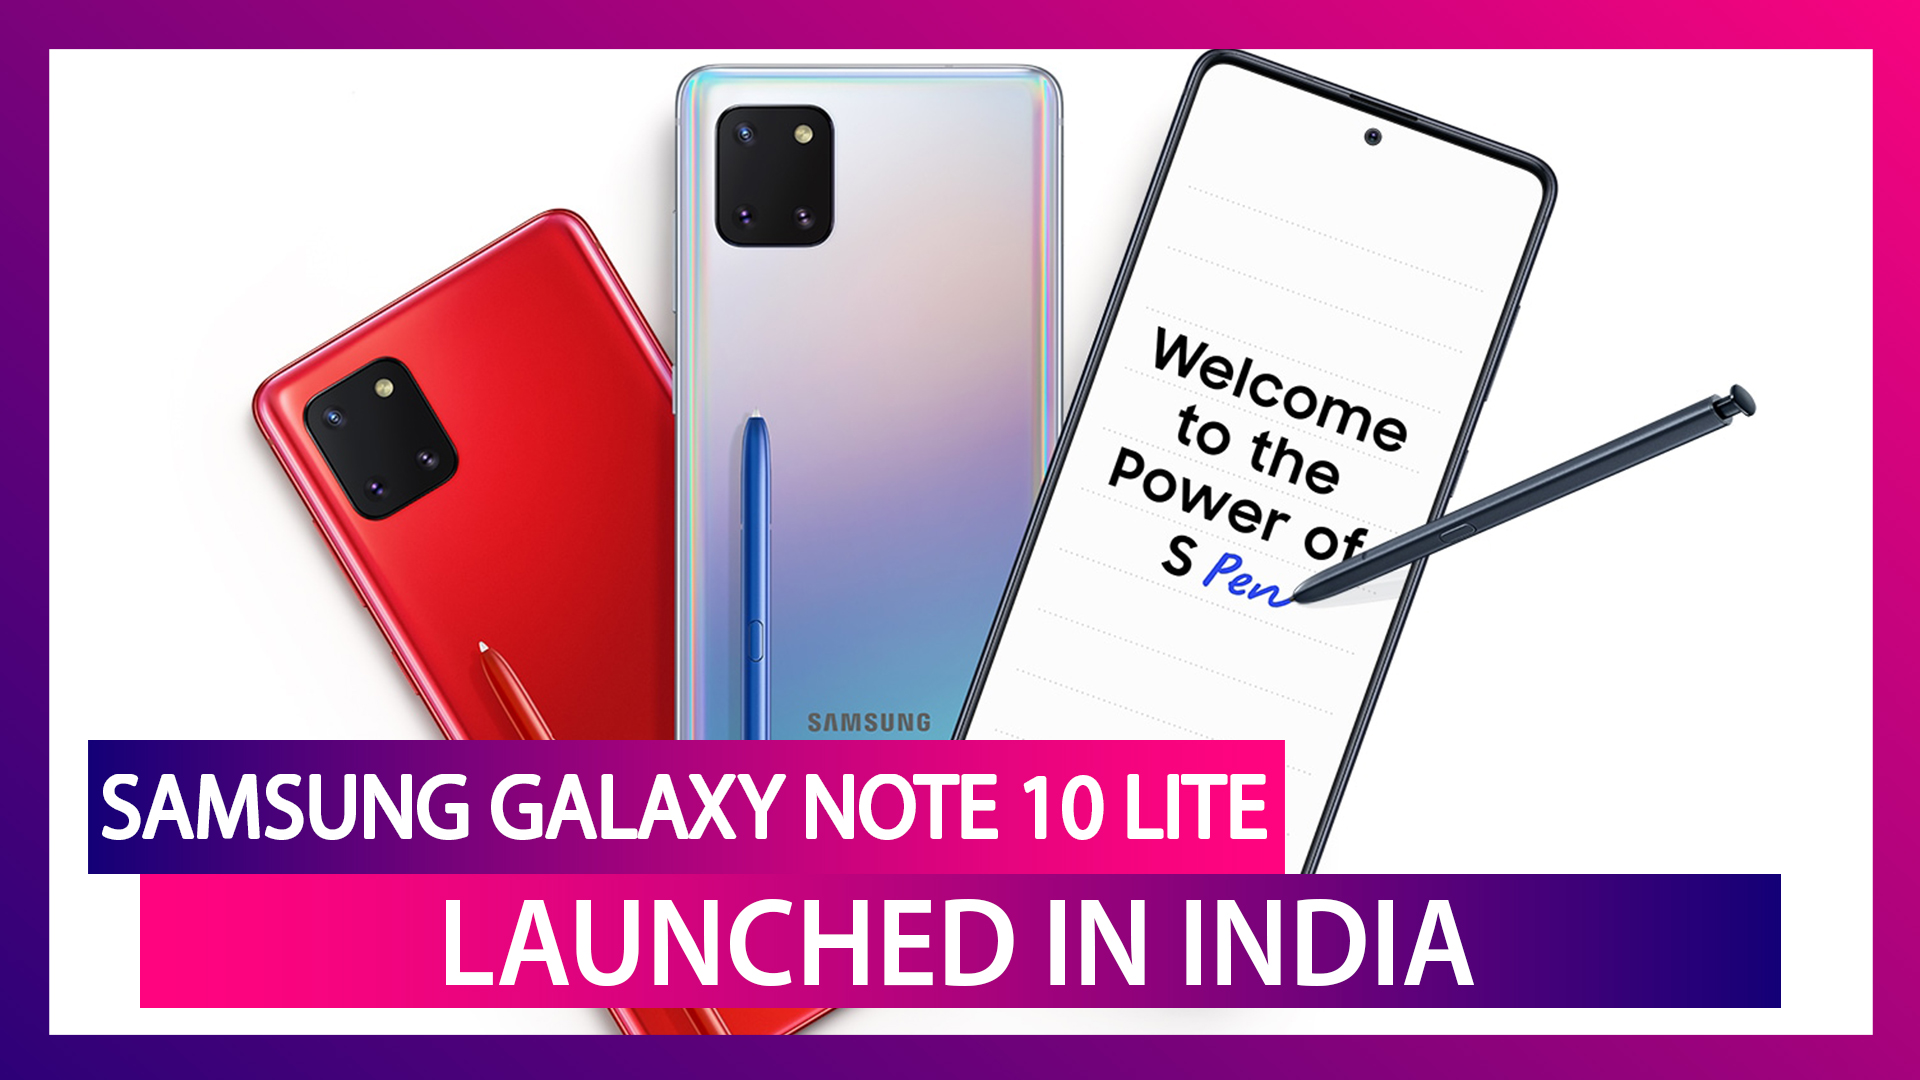 Samsung Galaxy Note 10 Lite Smartphone Launched in India; Prices, Features, Variants & Specs